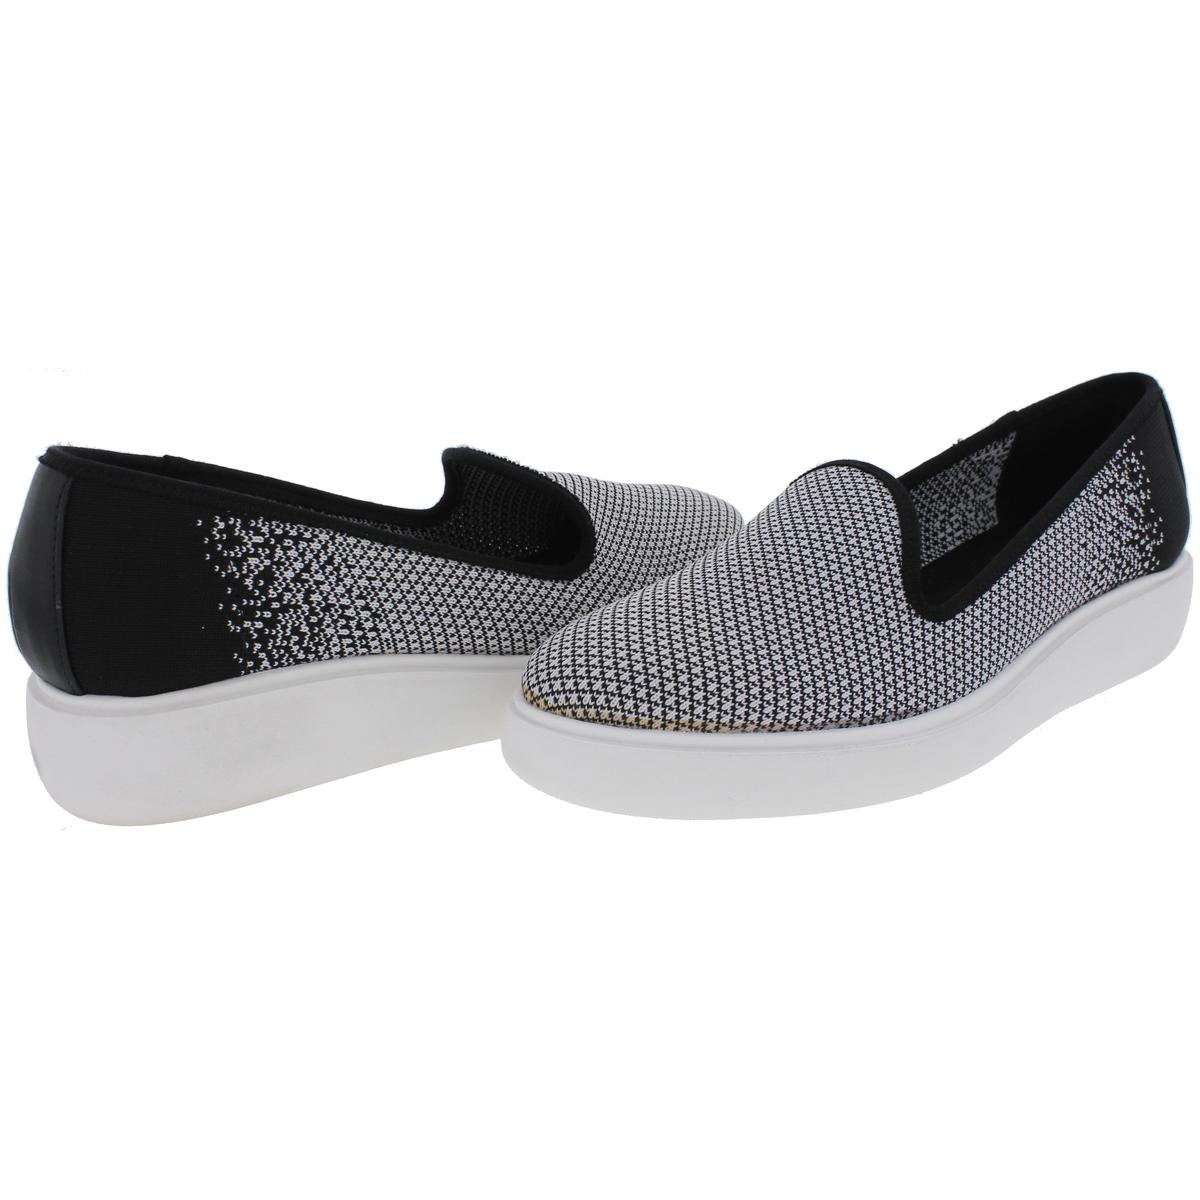 IMNYC-Isaac-Mizrahi-Womens-Kimberly-Knit-Sport-Casual-Loafers-Shoes-BHFO-2805 thumbnail 6